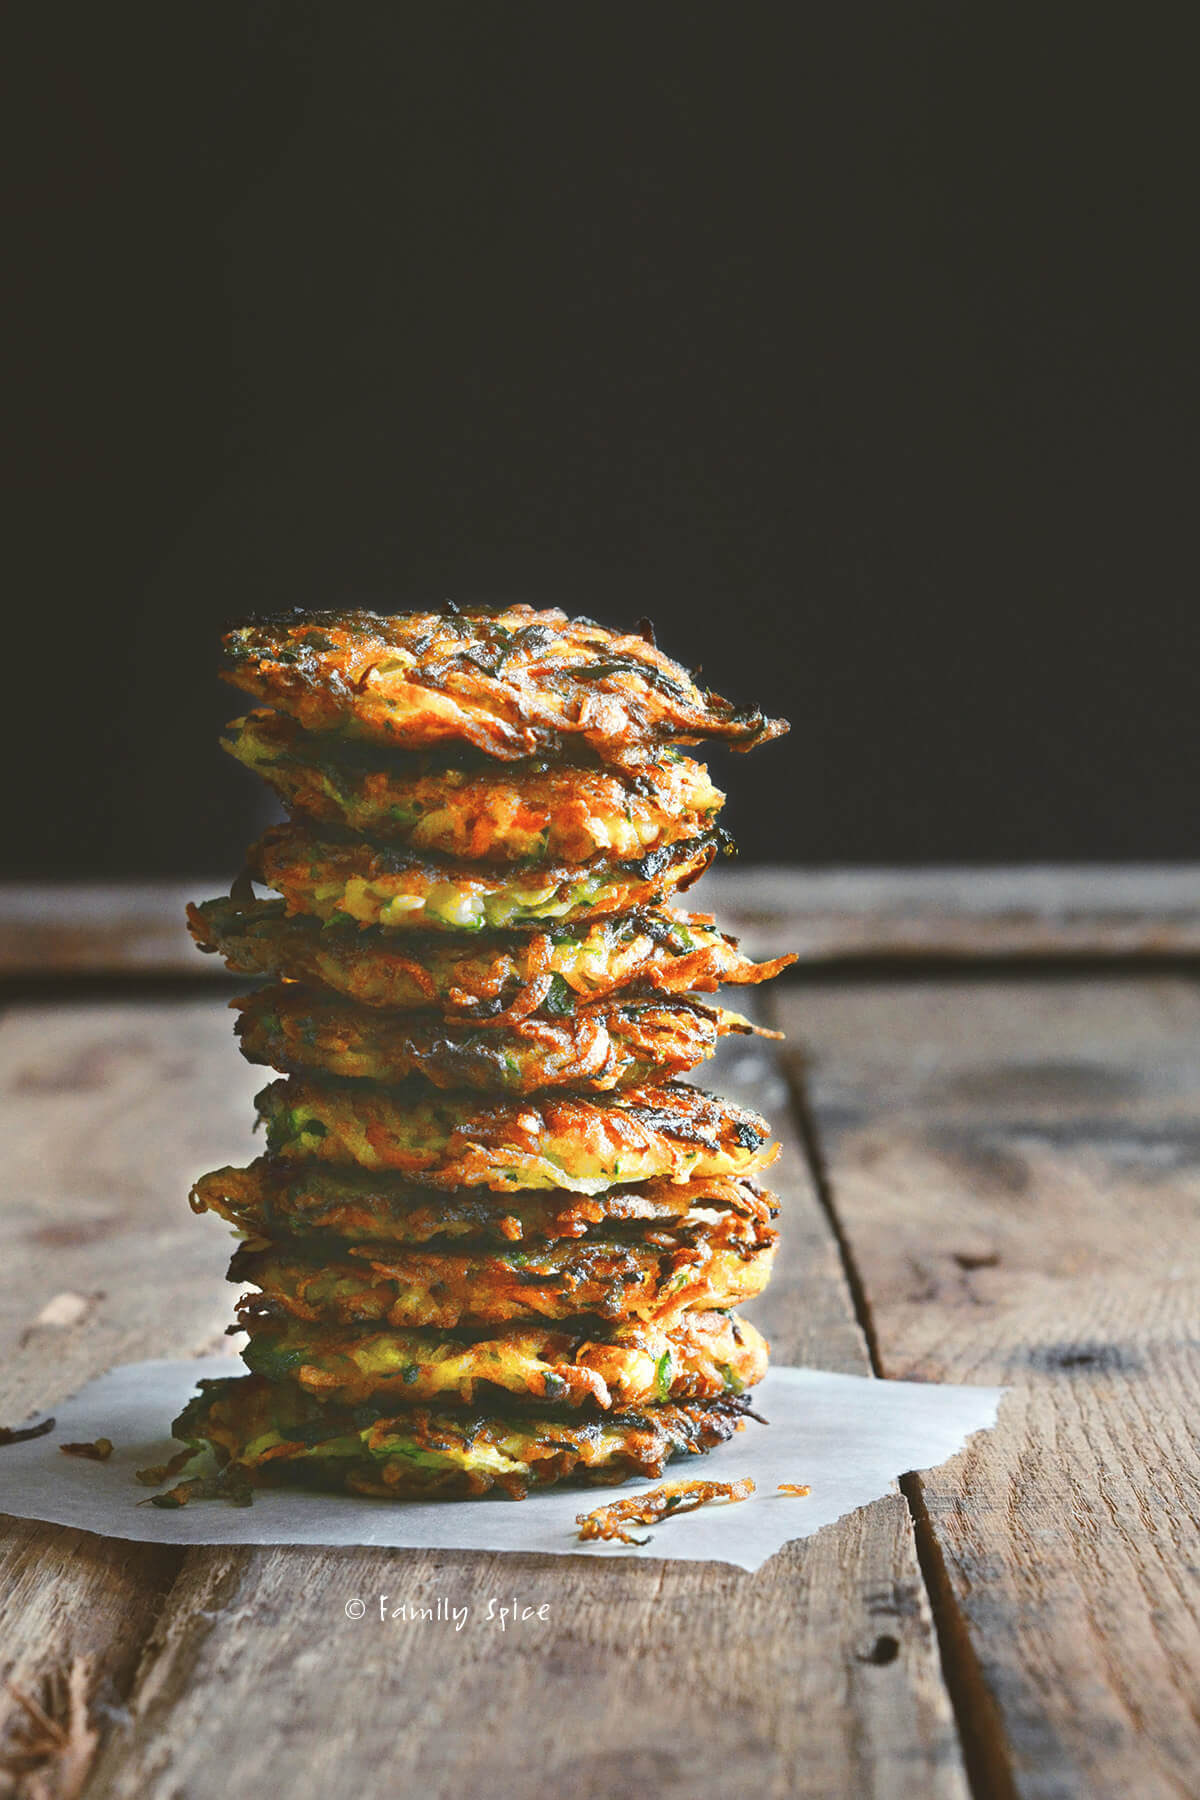 A stack of vegetable latkes on a dark and rustic background